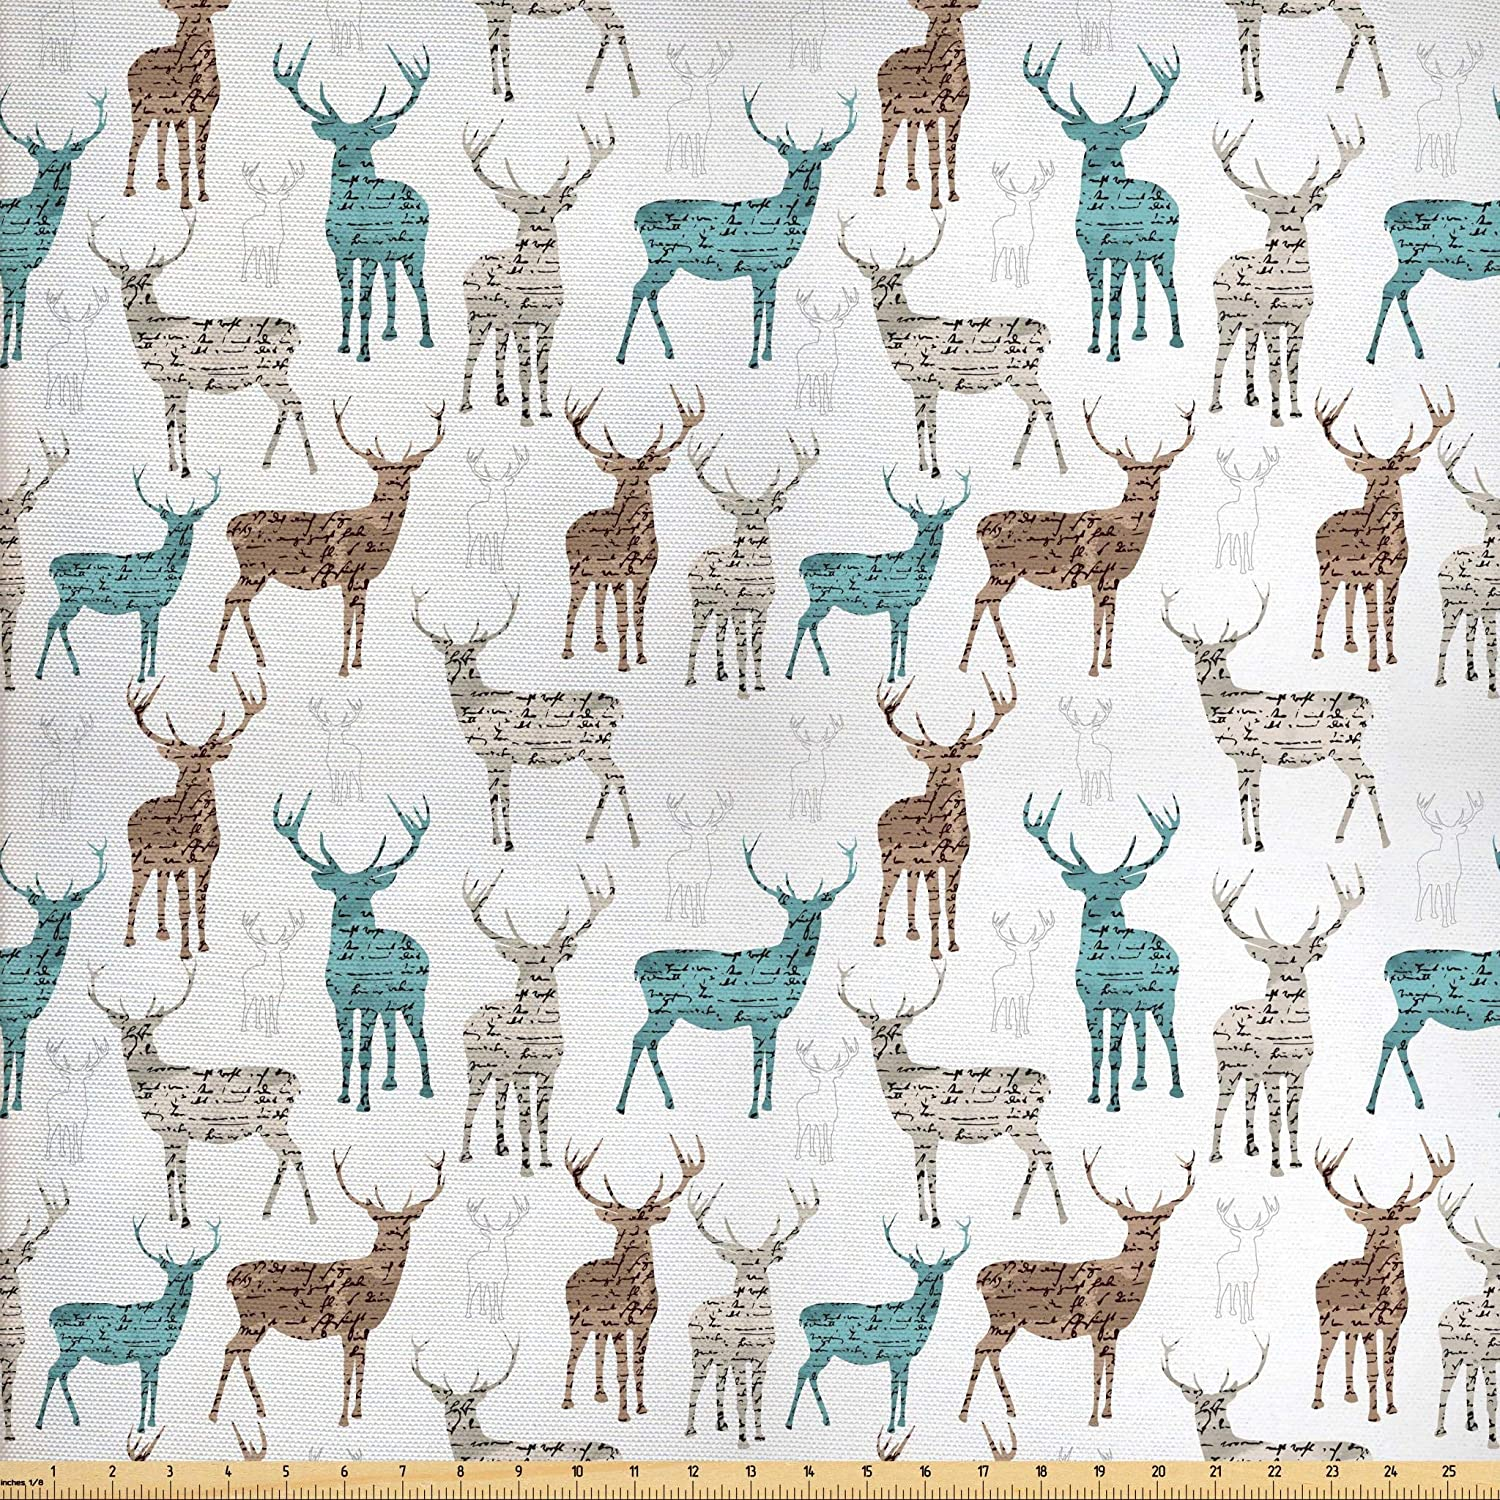 Ambesonne Deer Fabric by The Yard, Animals with Old Text Pattern Christmas Theme Vintage Inspired Illustration, Decorative Fabric for Upholstery and Home Accents, 2 Yards, Turquoise Beige